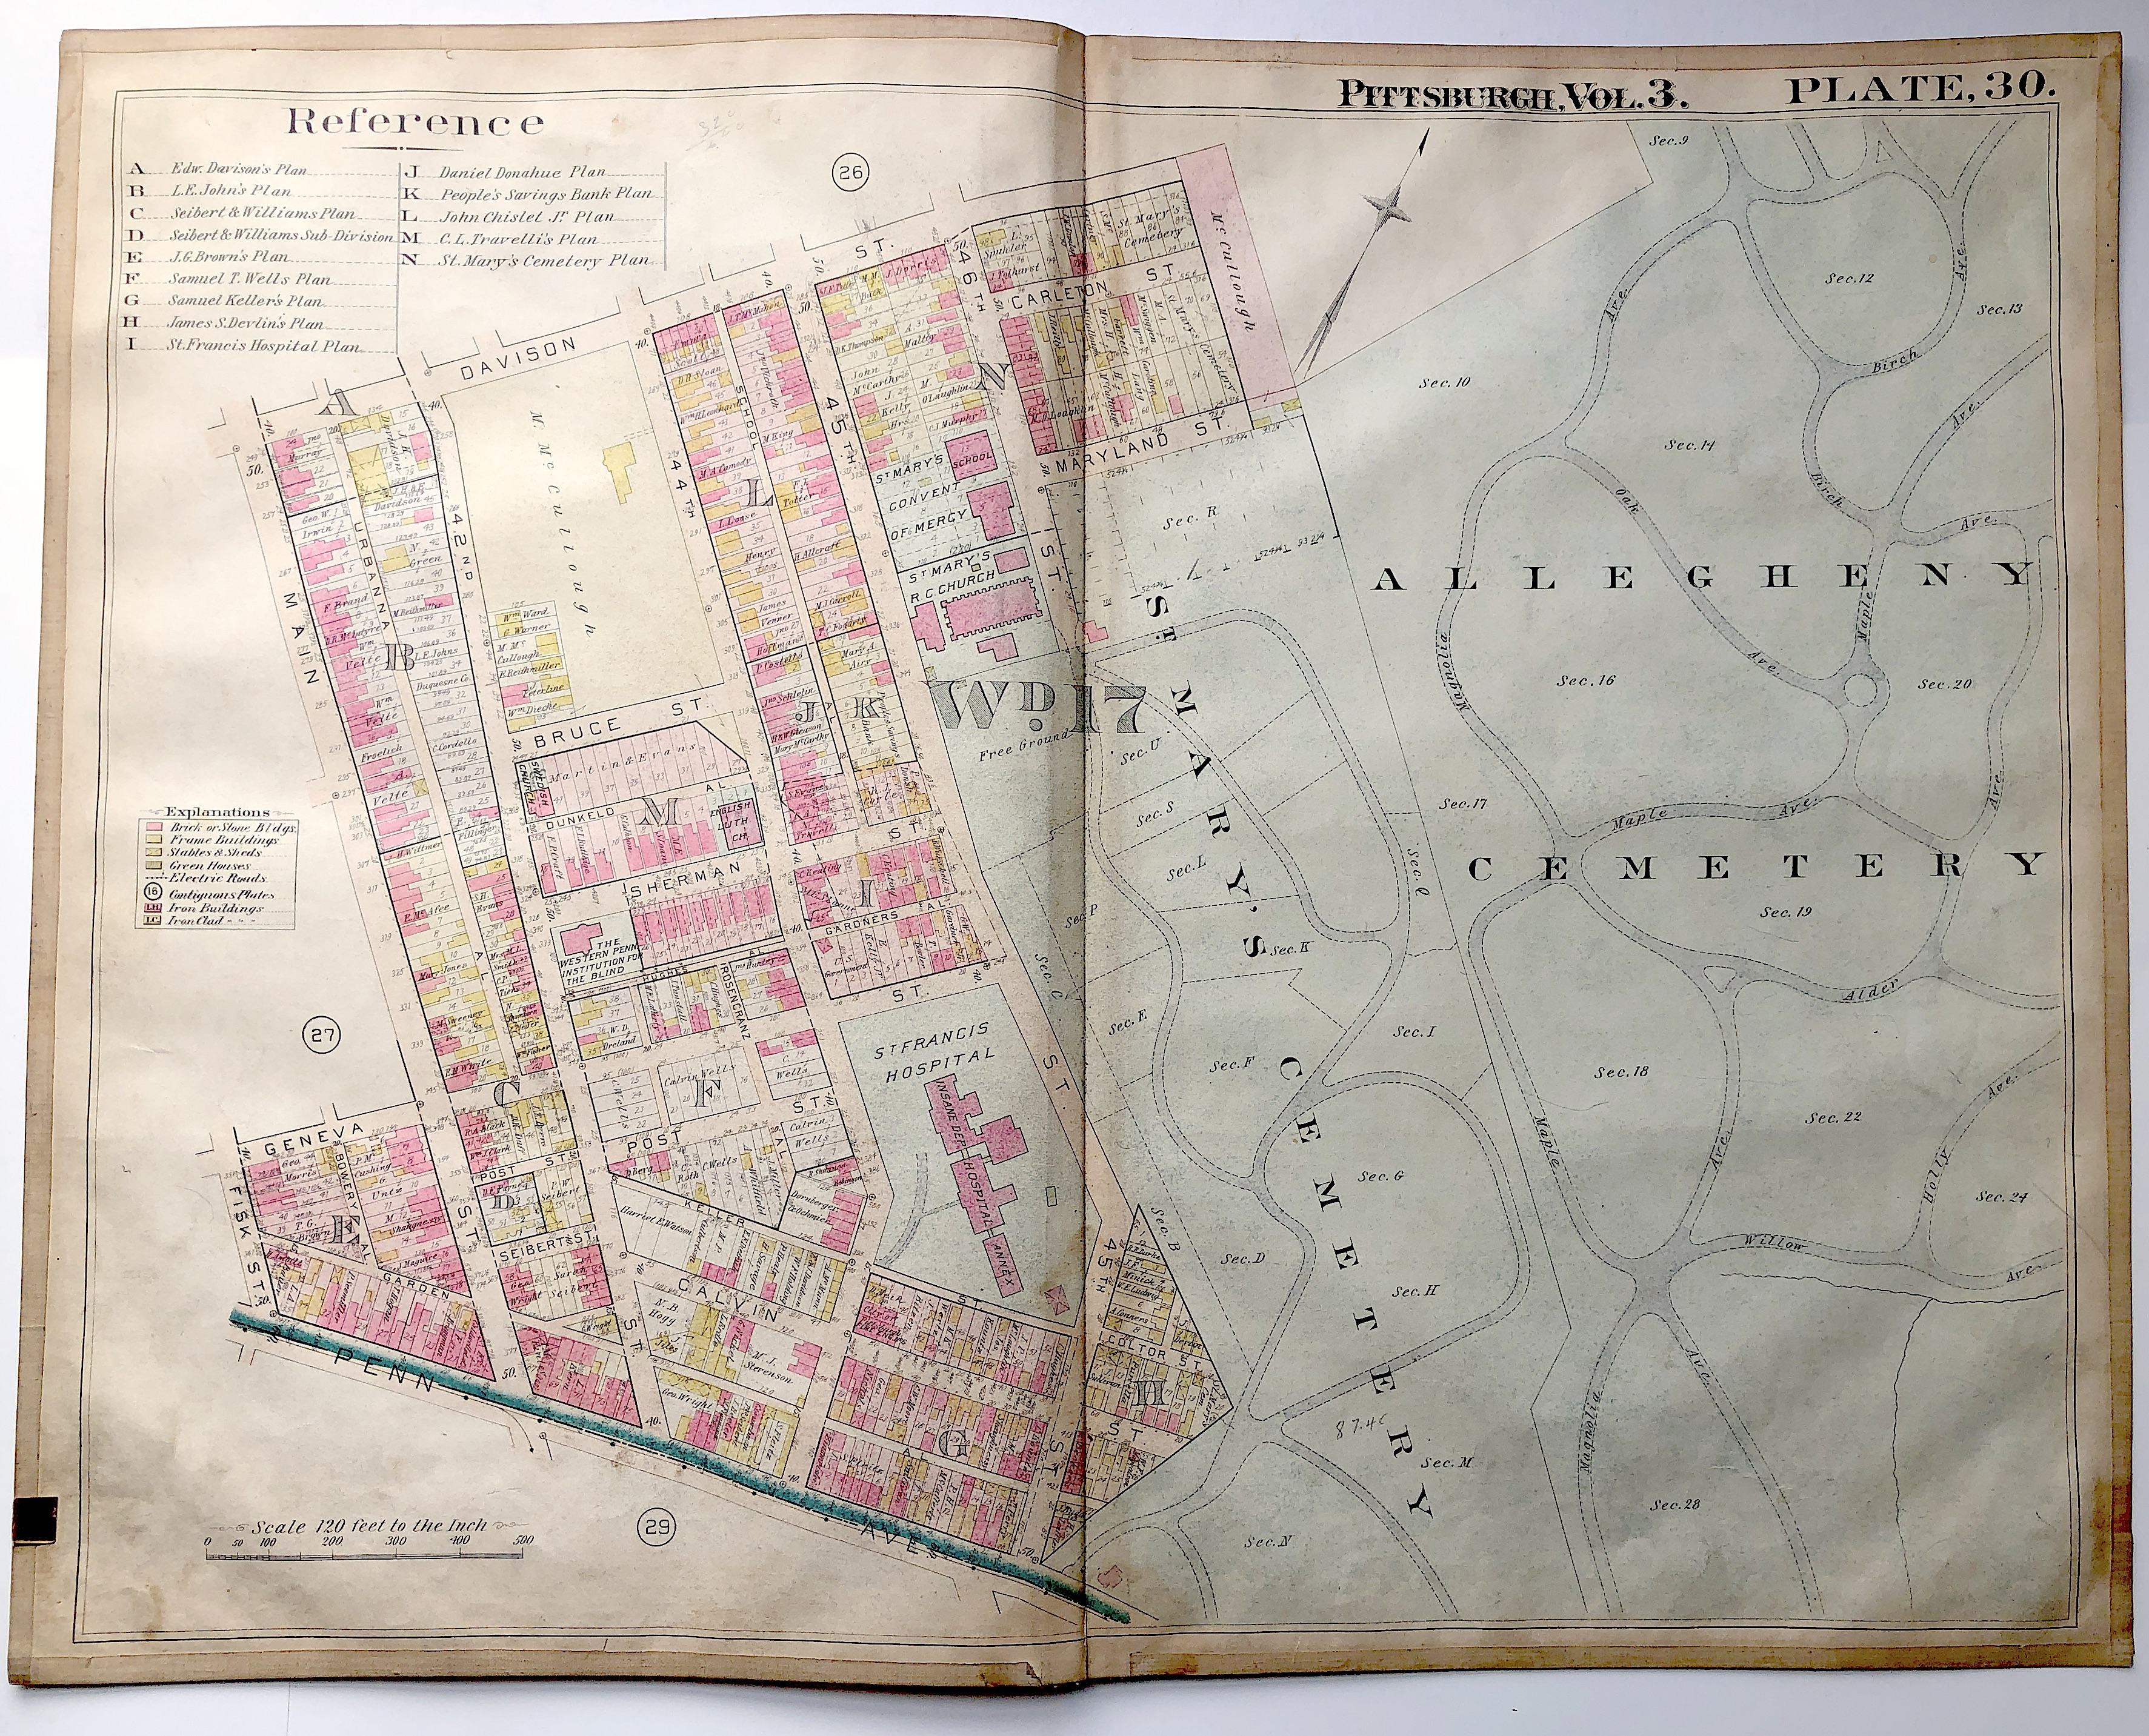 Old Maps of Pittsburgh